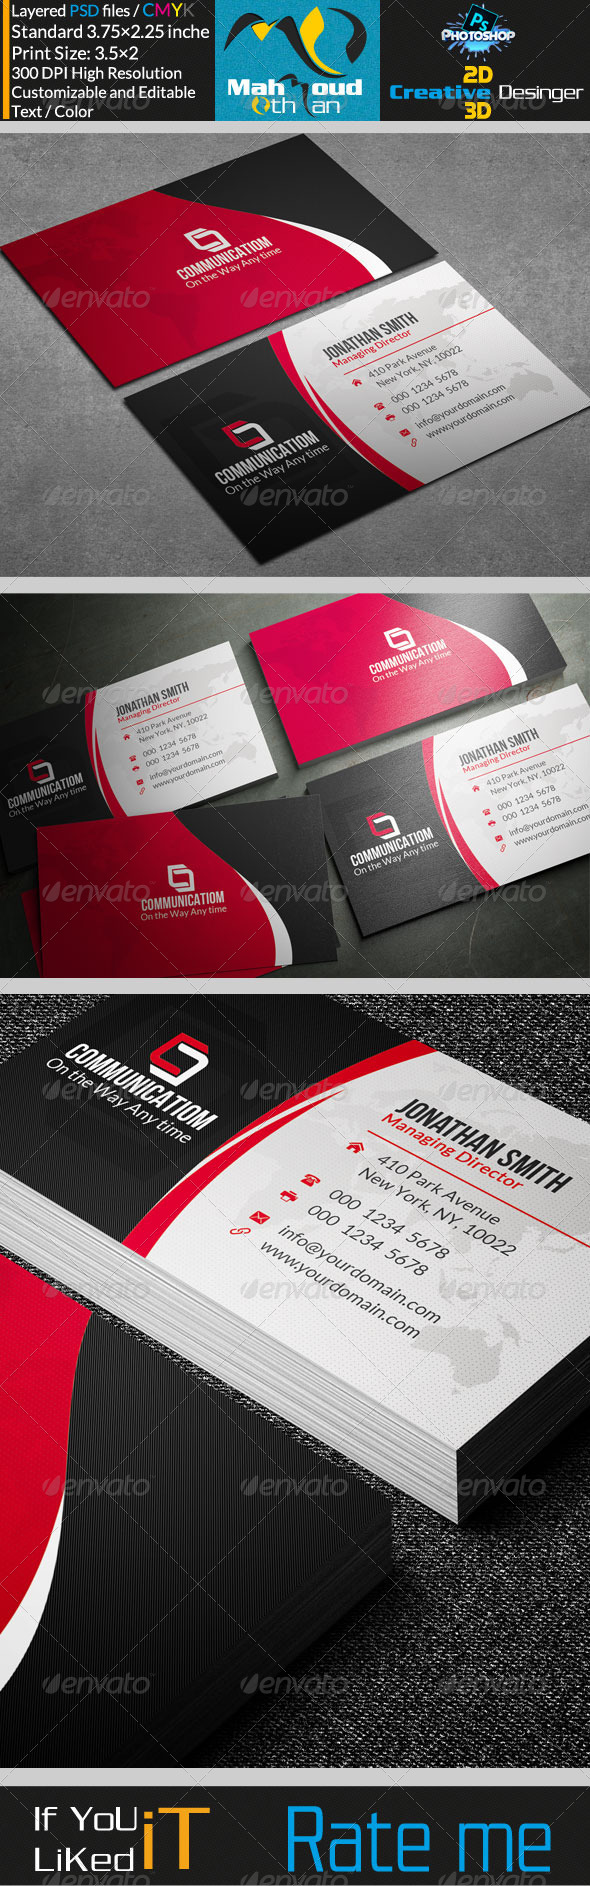 GraphicRiver Creative Corporate Business Card V26 7688005